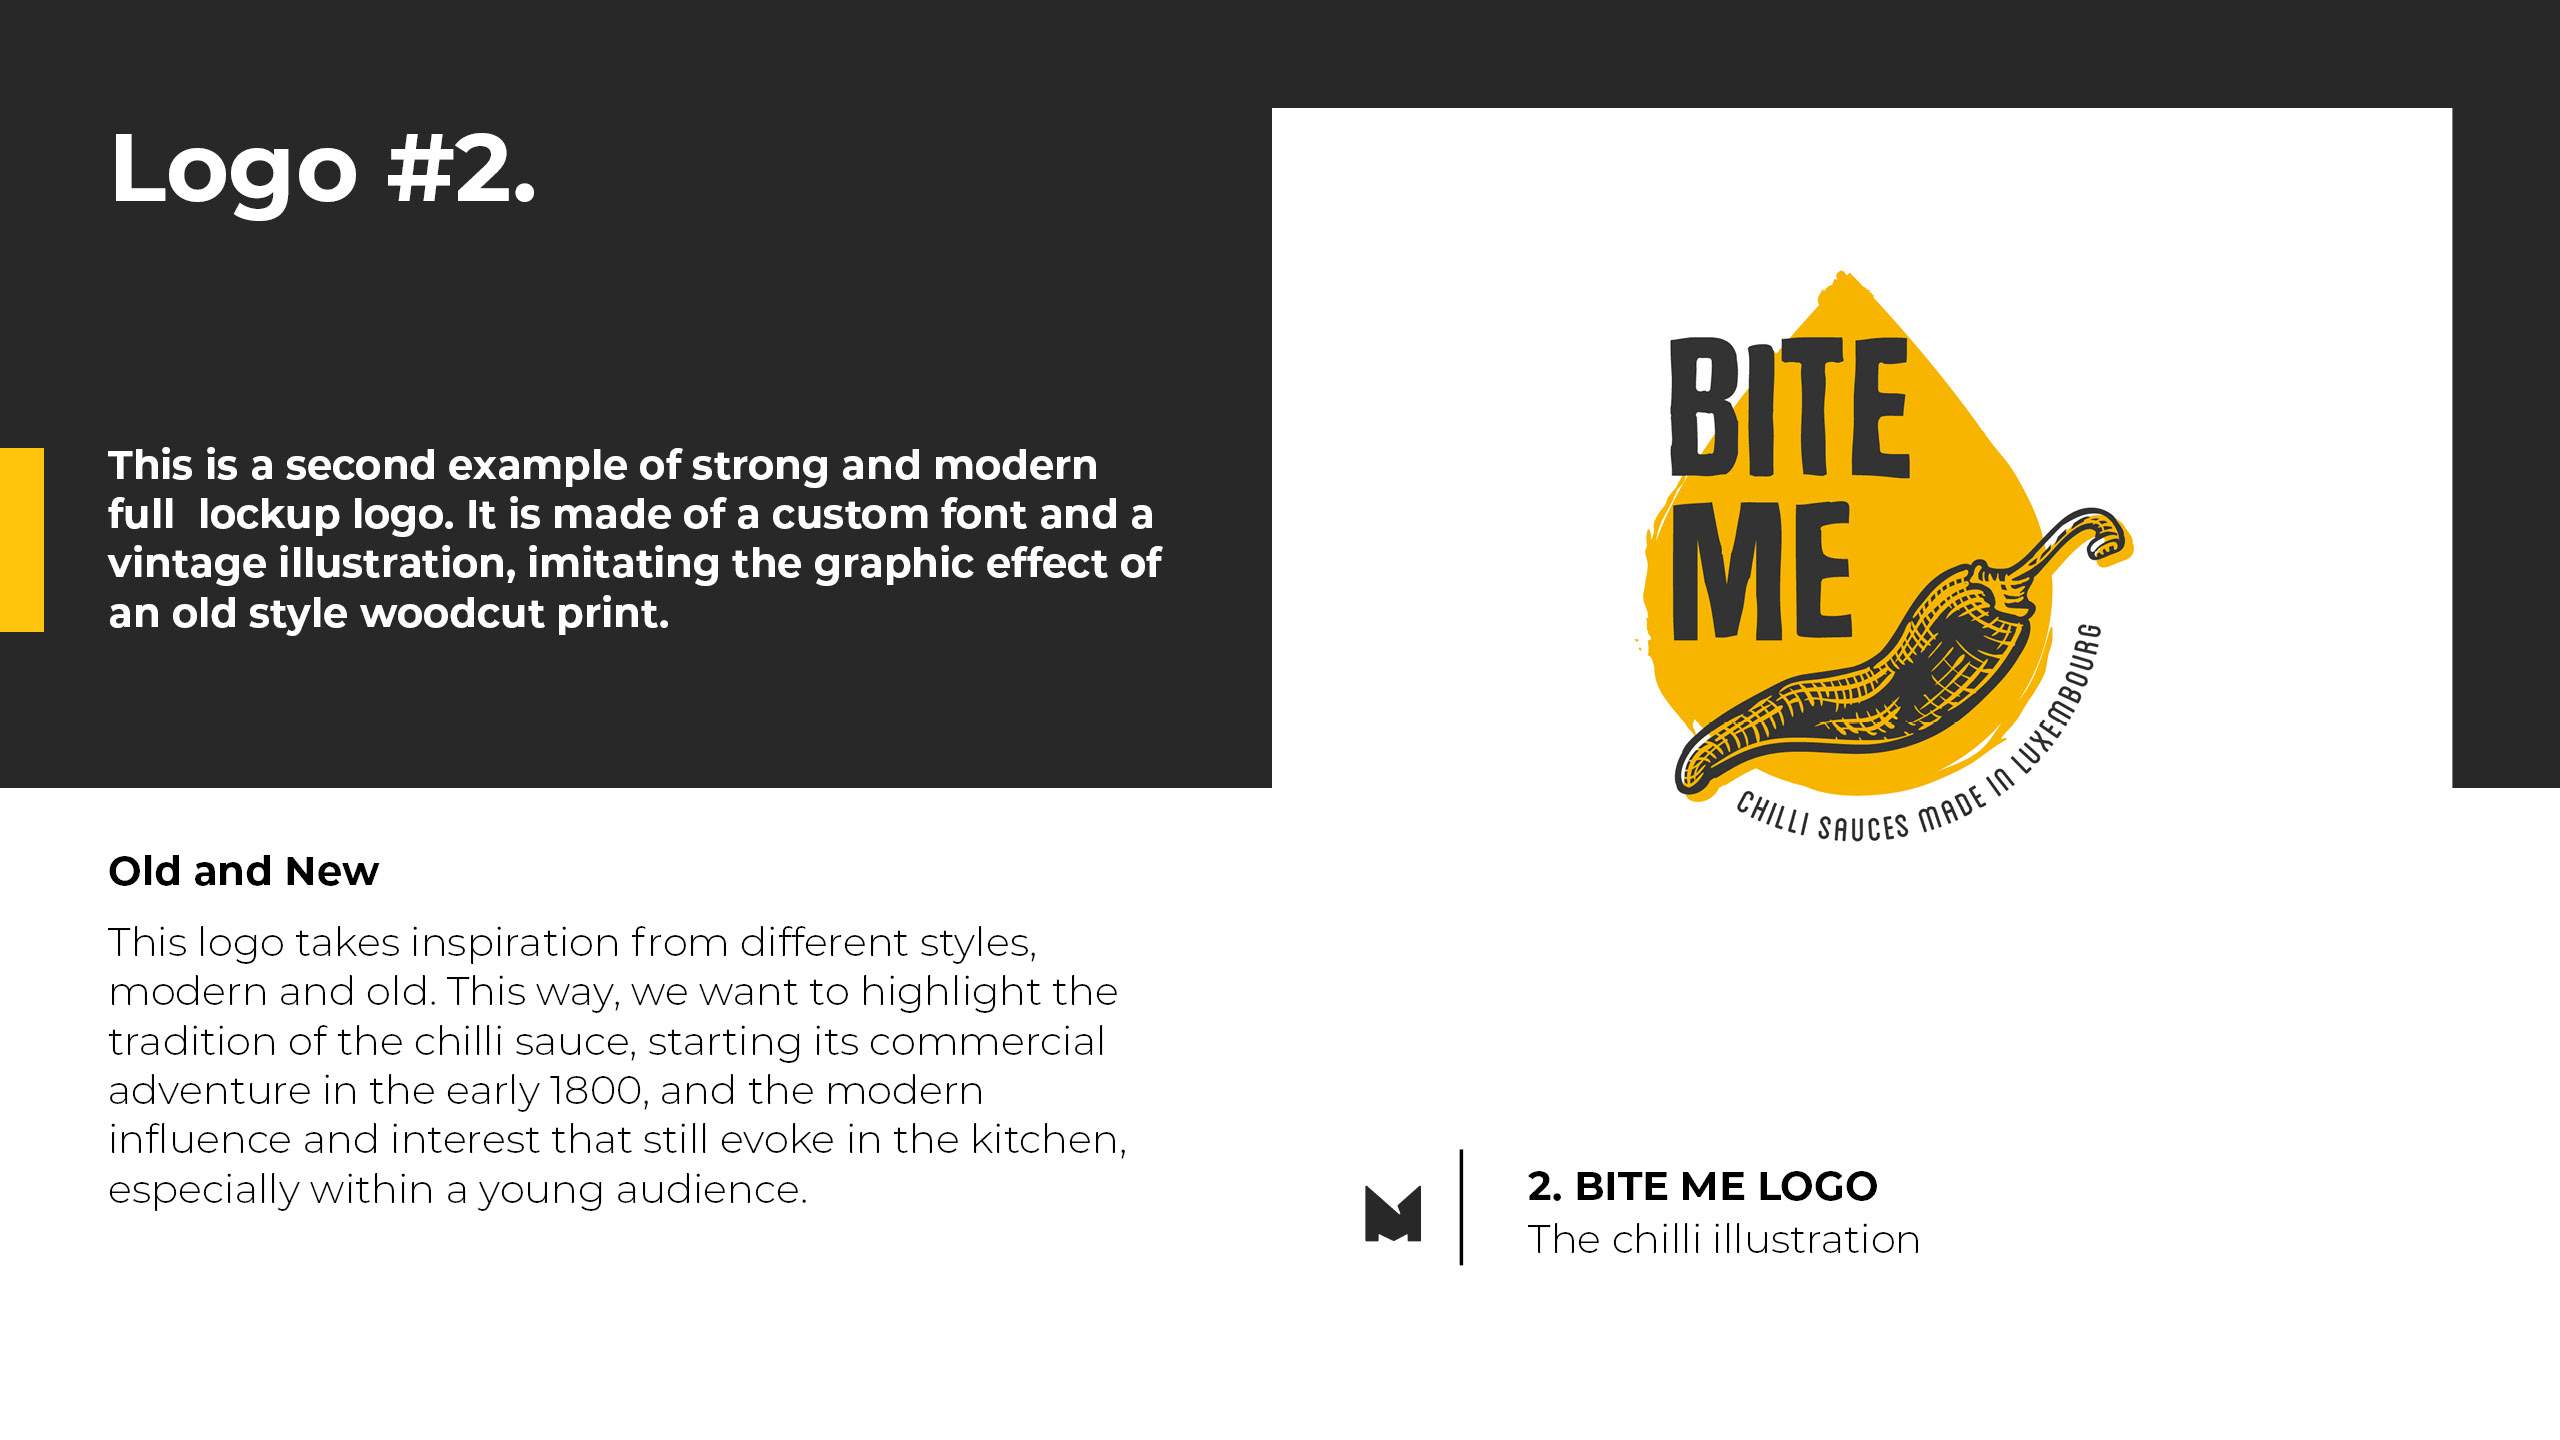 Bite Me – Luxembourg